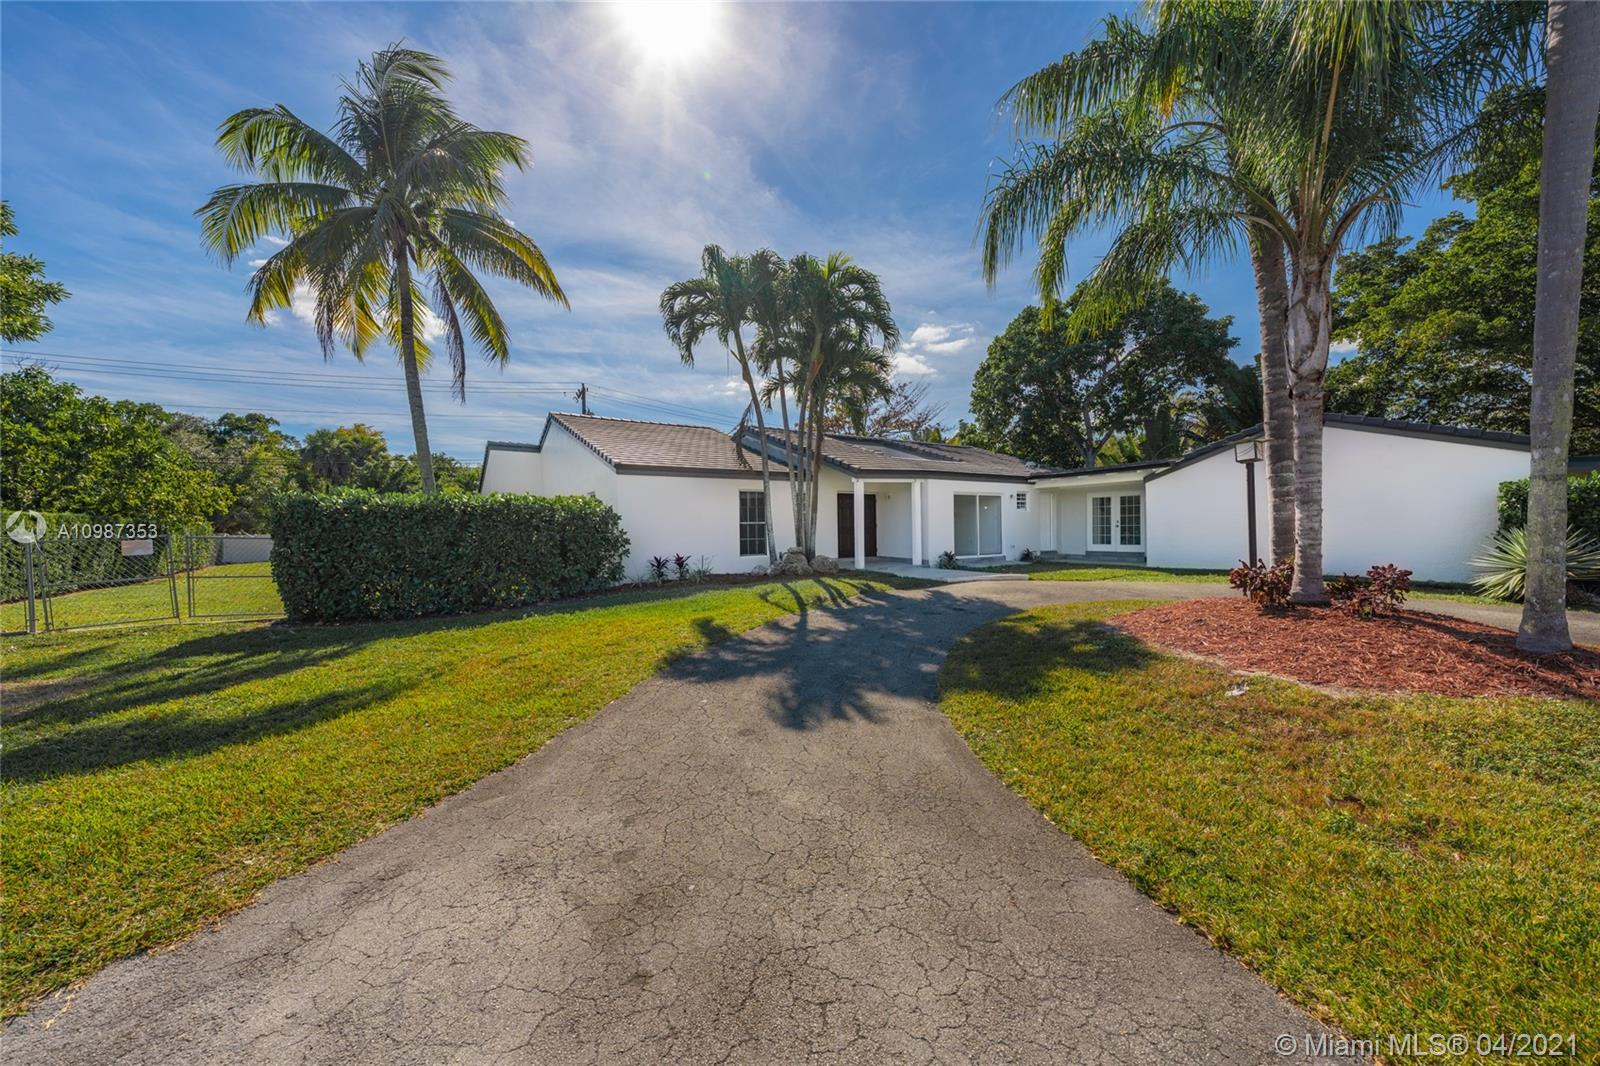 Cut your commute time with this centrally located pool home located in one of Miami's most desirable areas. Set within a quiet cul-de-sac, this spacious home features a new contemporary, flat-tile roof, an updated kitchen with stainless steel appliances, quartz countertops, and a unique layout including a privately-set room ideal for a home office, plus in-law quarters with a dedicated entrance. Vaulted ceilings in the living room and master bedroom add character to this bright and freshly painted home, offering pool views from various spaces including the expansive family room/kitchen. Walk-in closets, a pool terrace, plus room to park a boat/trailer on a sprawling lot are a plus! Located near great schools, restaurants and shopping. Masks required during showings.